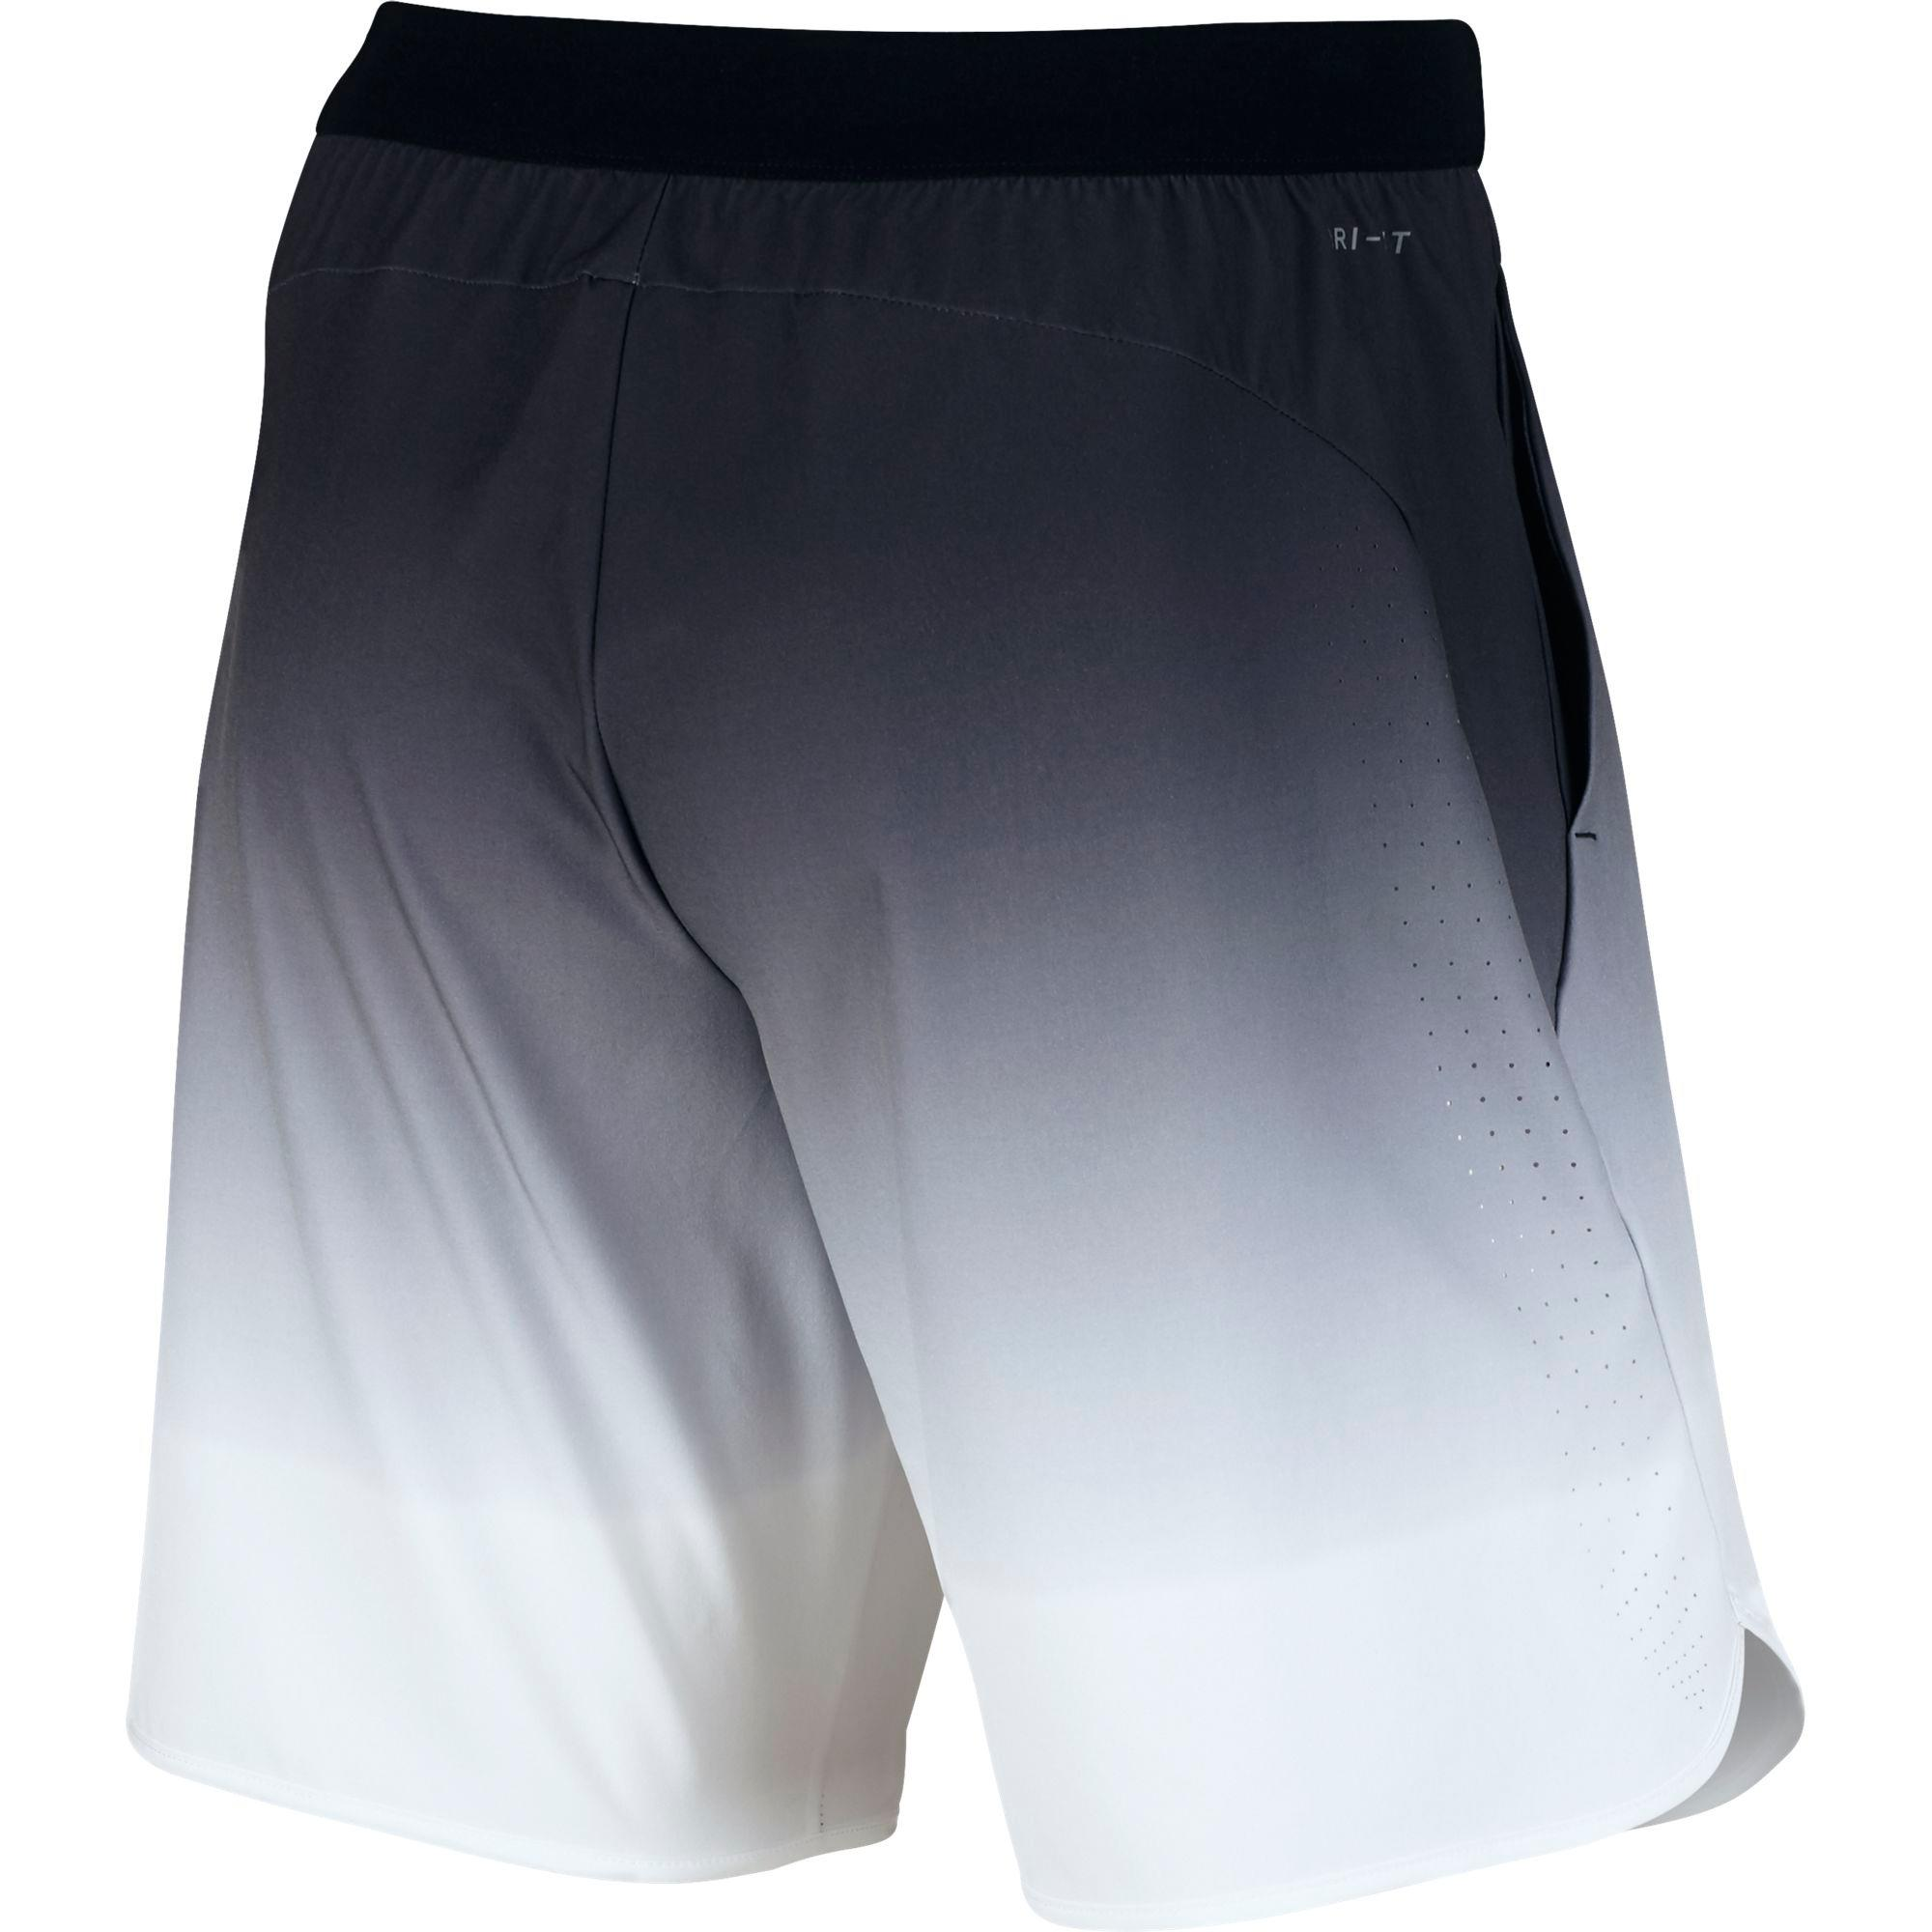 Nike Mens Ace Gladiator 9 Inch Shorts - Black/White